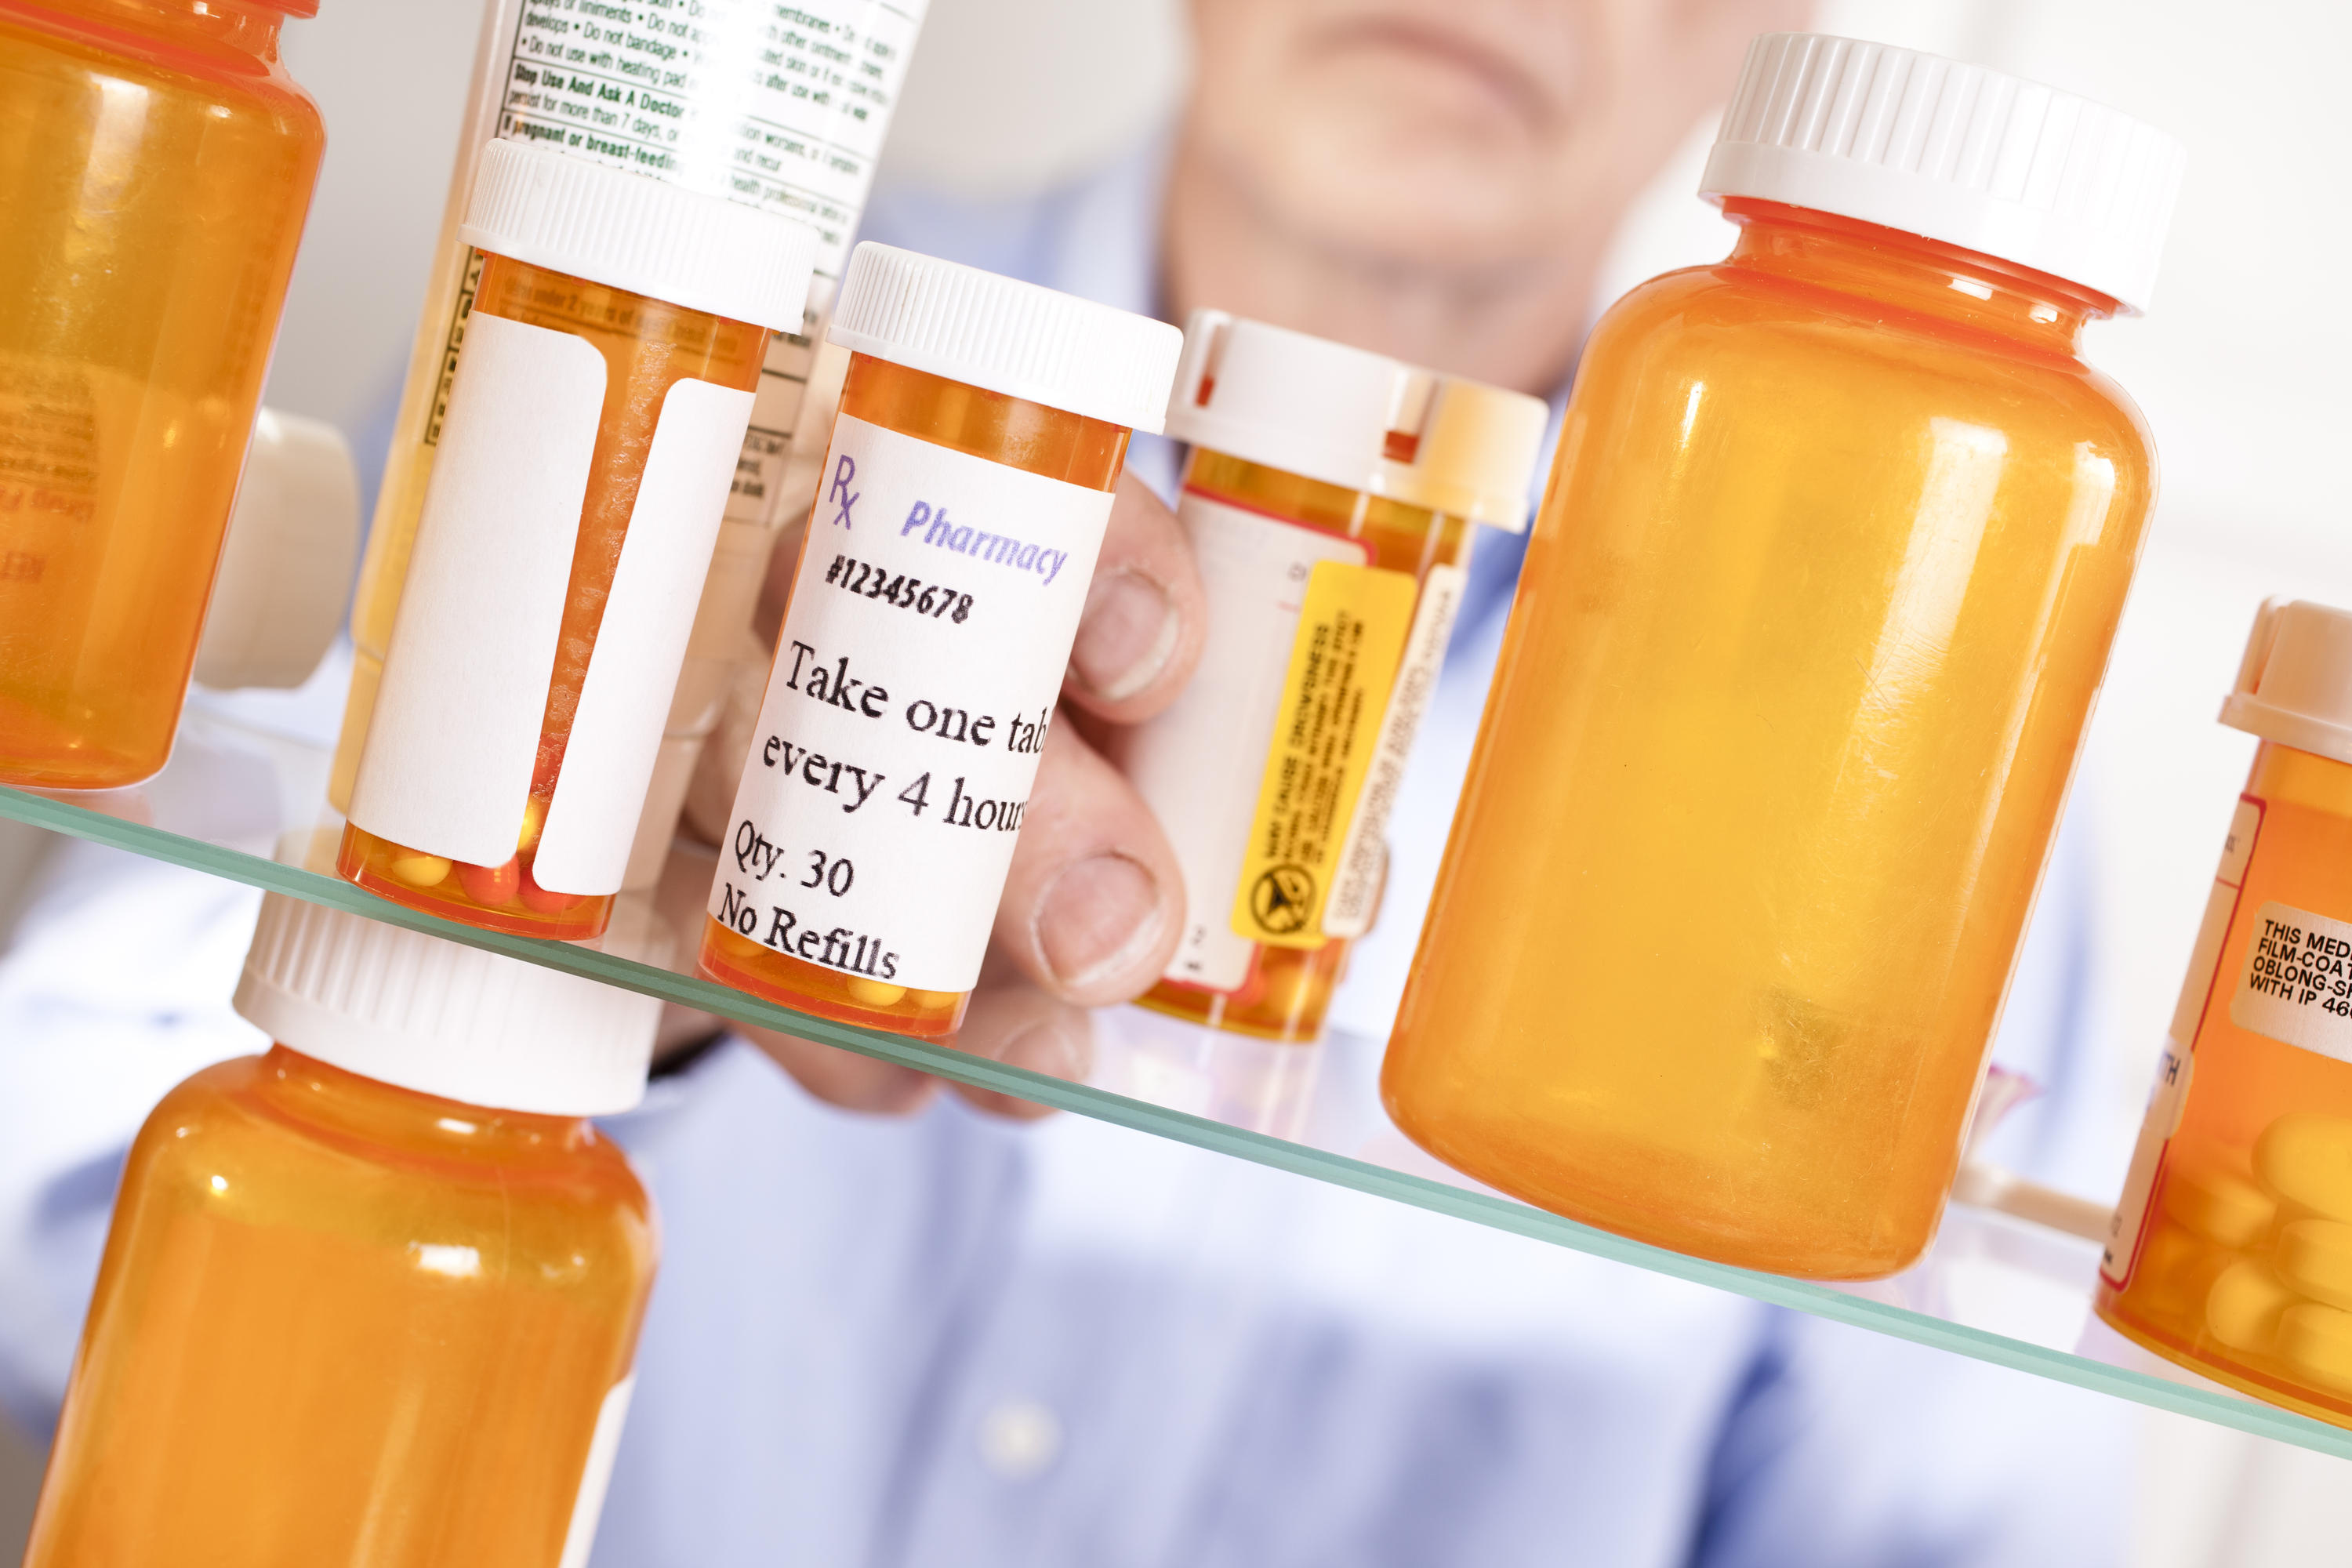 Medication bottles on a shelf